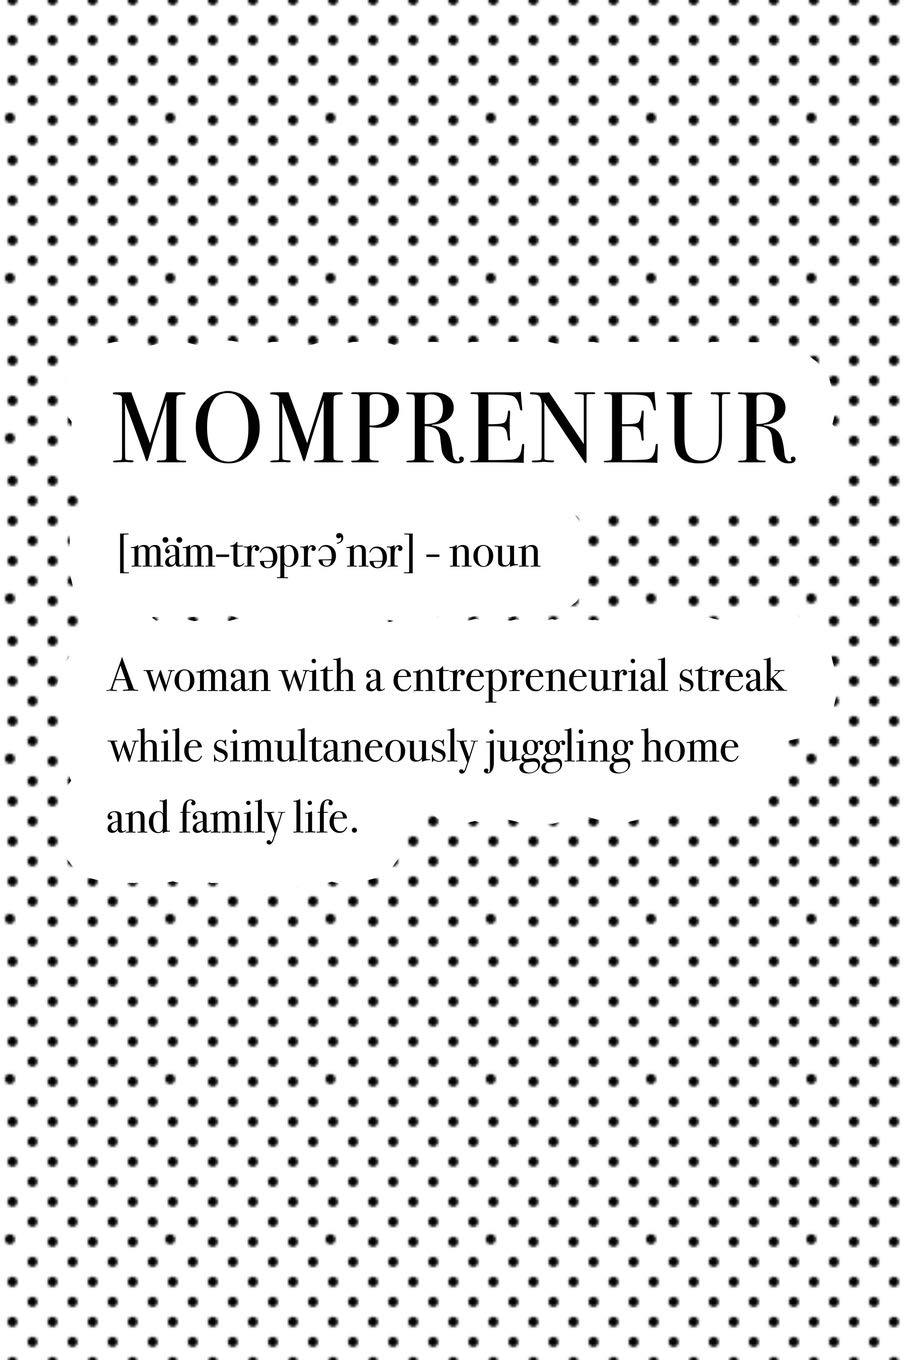 Buy Mompreneur A Woman With A Entrepreneurial Streak While Simultaneously Juggling Home And Family Life A 6x9 Inch Matte Softcover Journal Notebook With Funny Dictionary Word Definition Cover Slogan Book Online